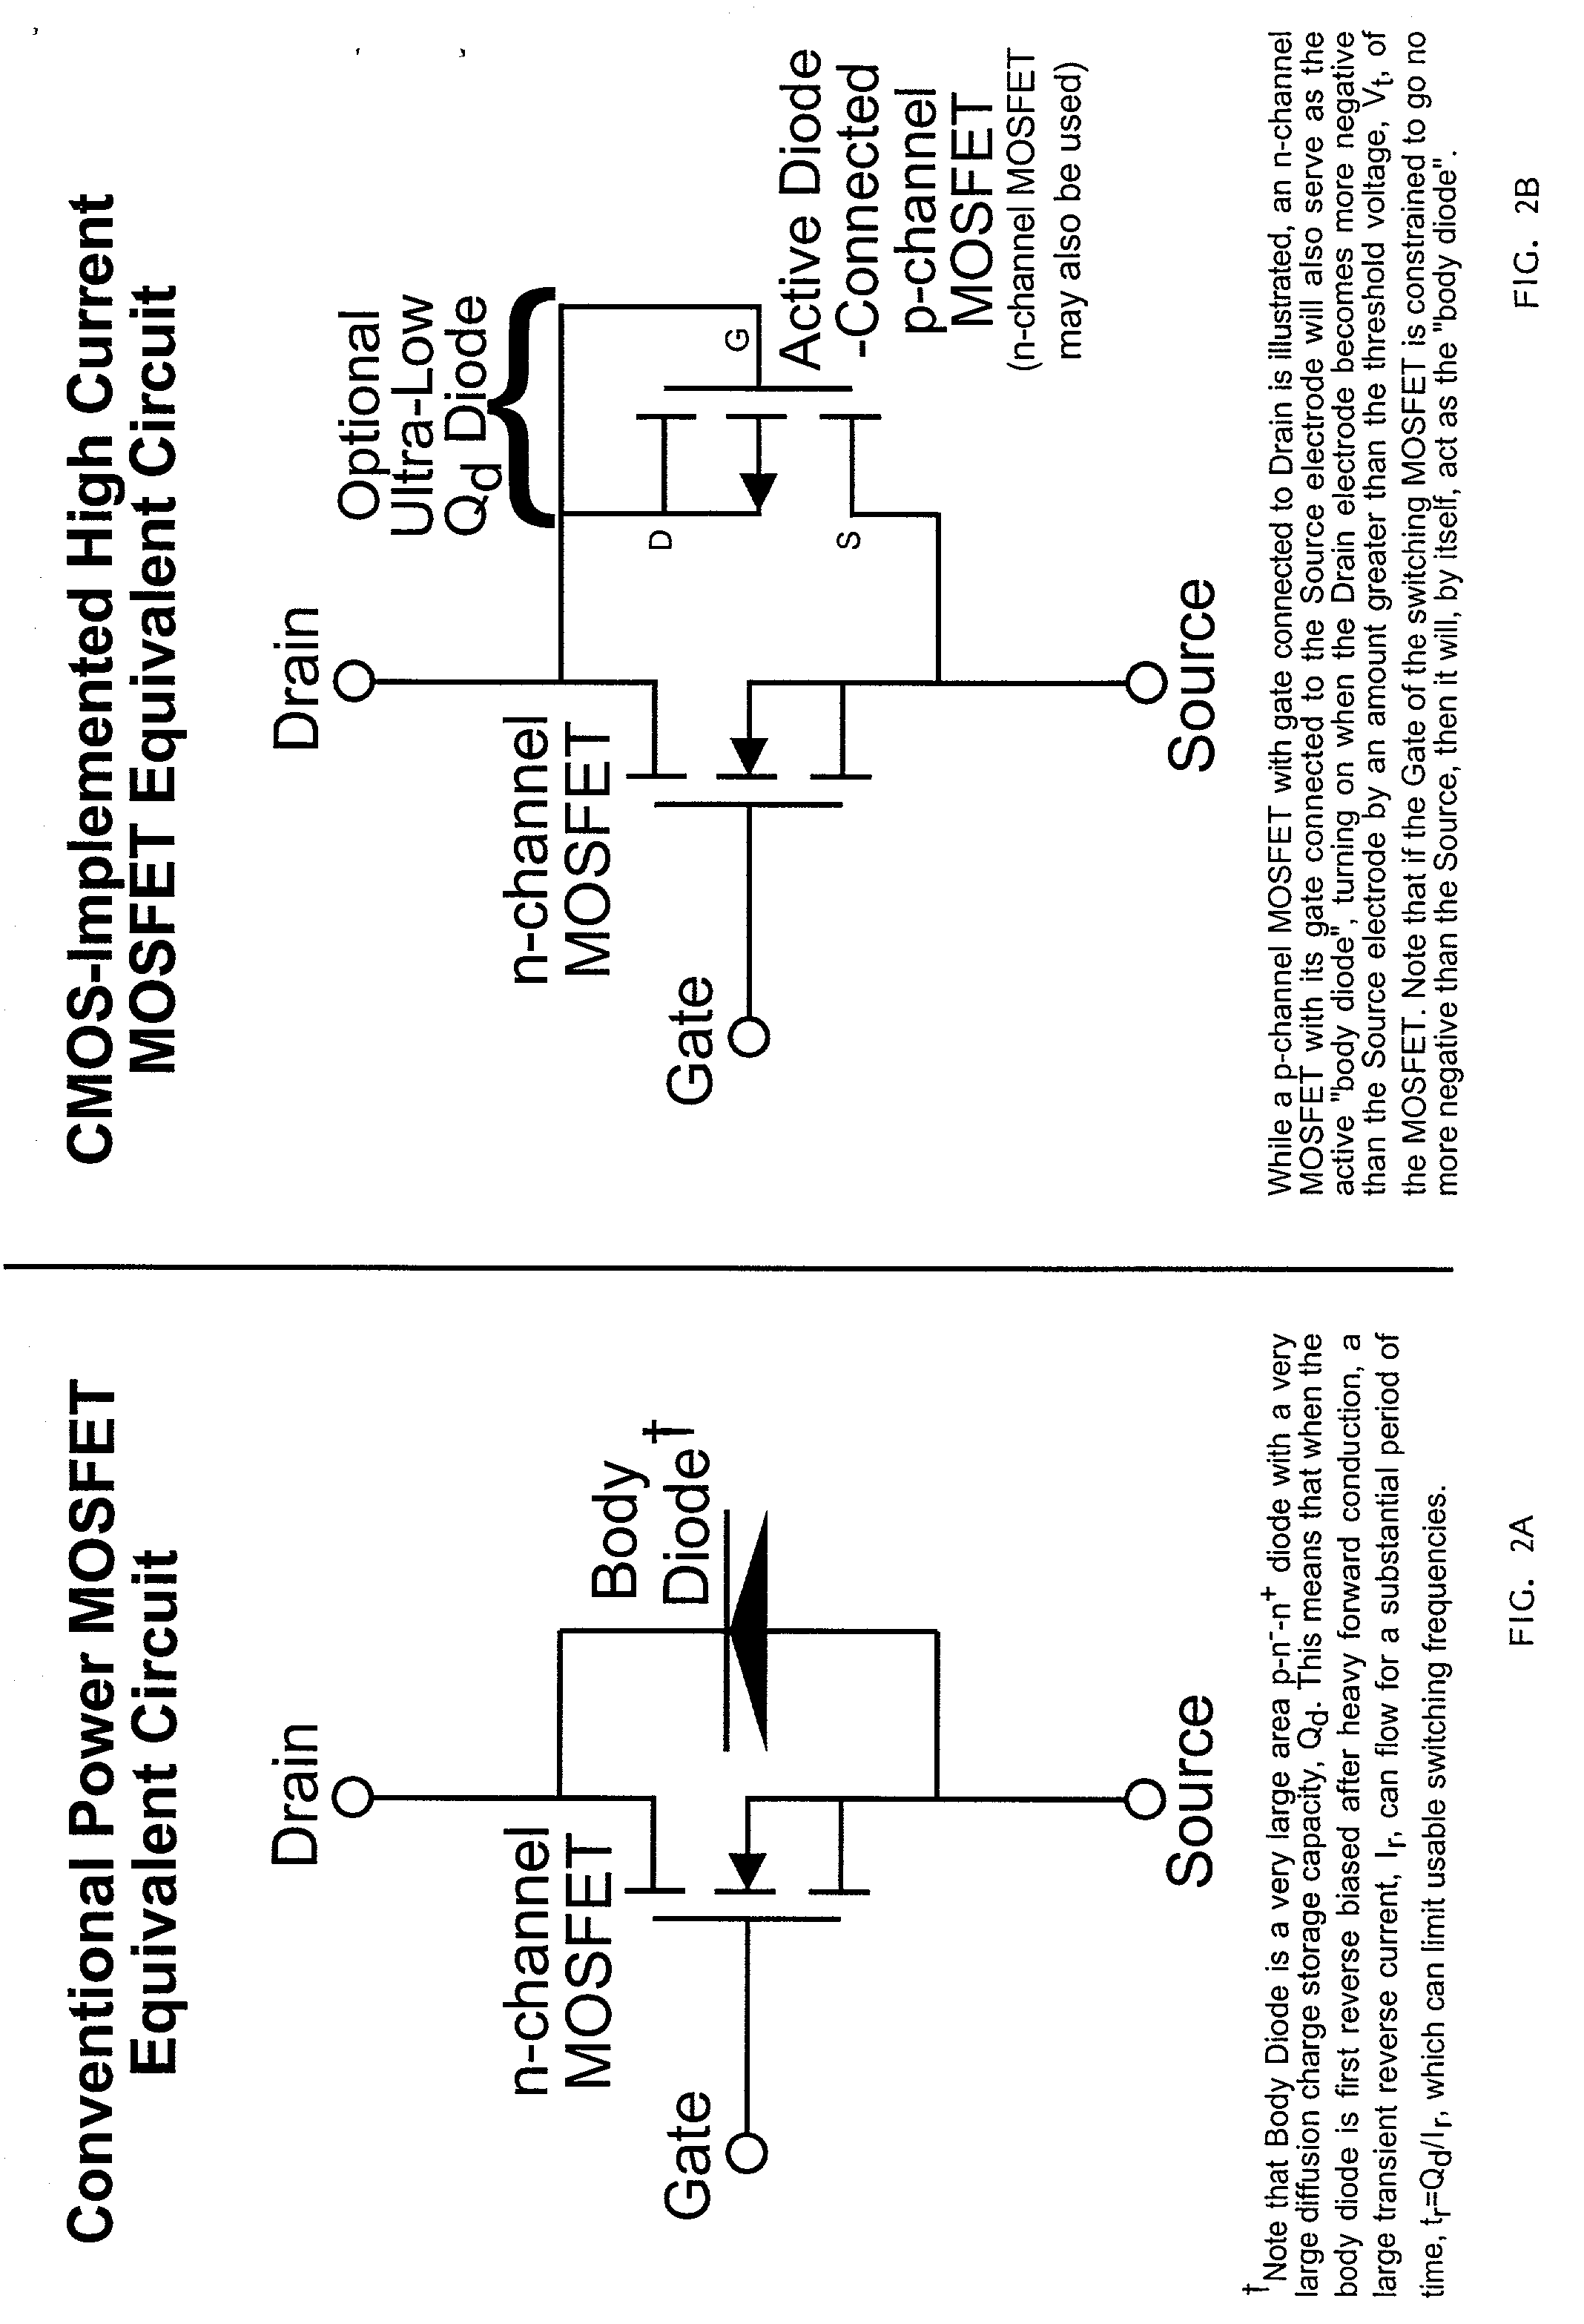 Us20020105009a1 Power Semiconductor Switching Devices P Channel Mosfet Circuit Diagram Figure 20020808 P00002